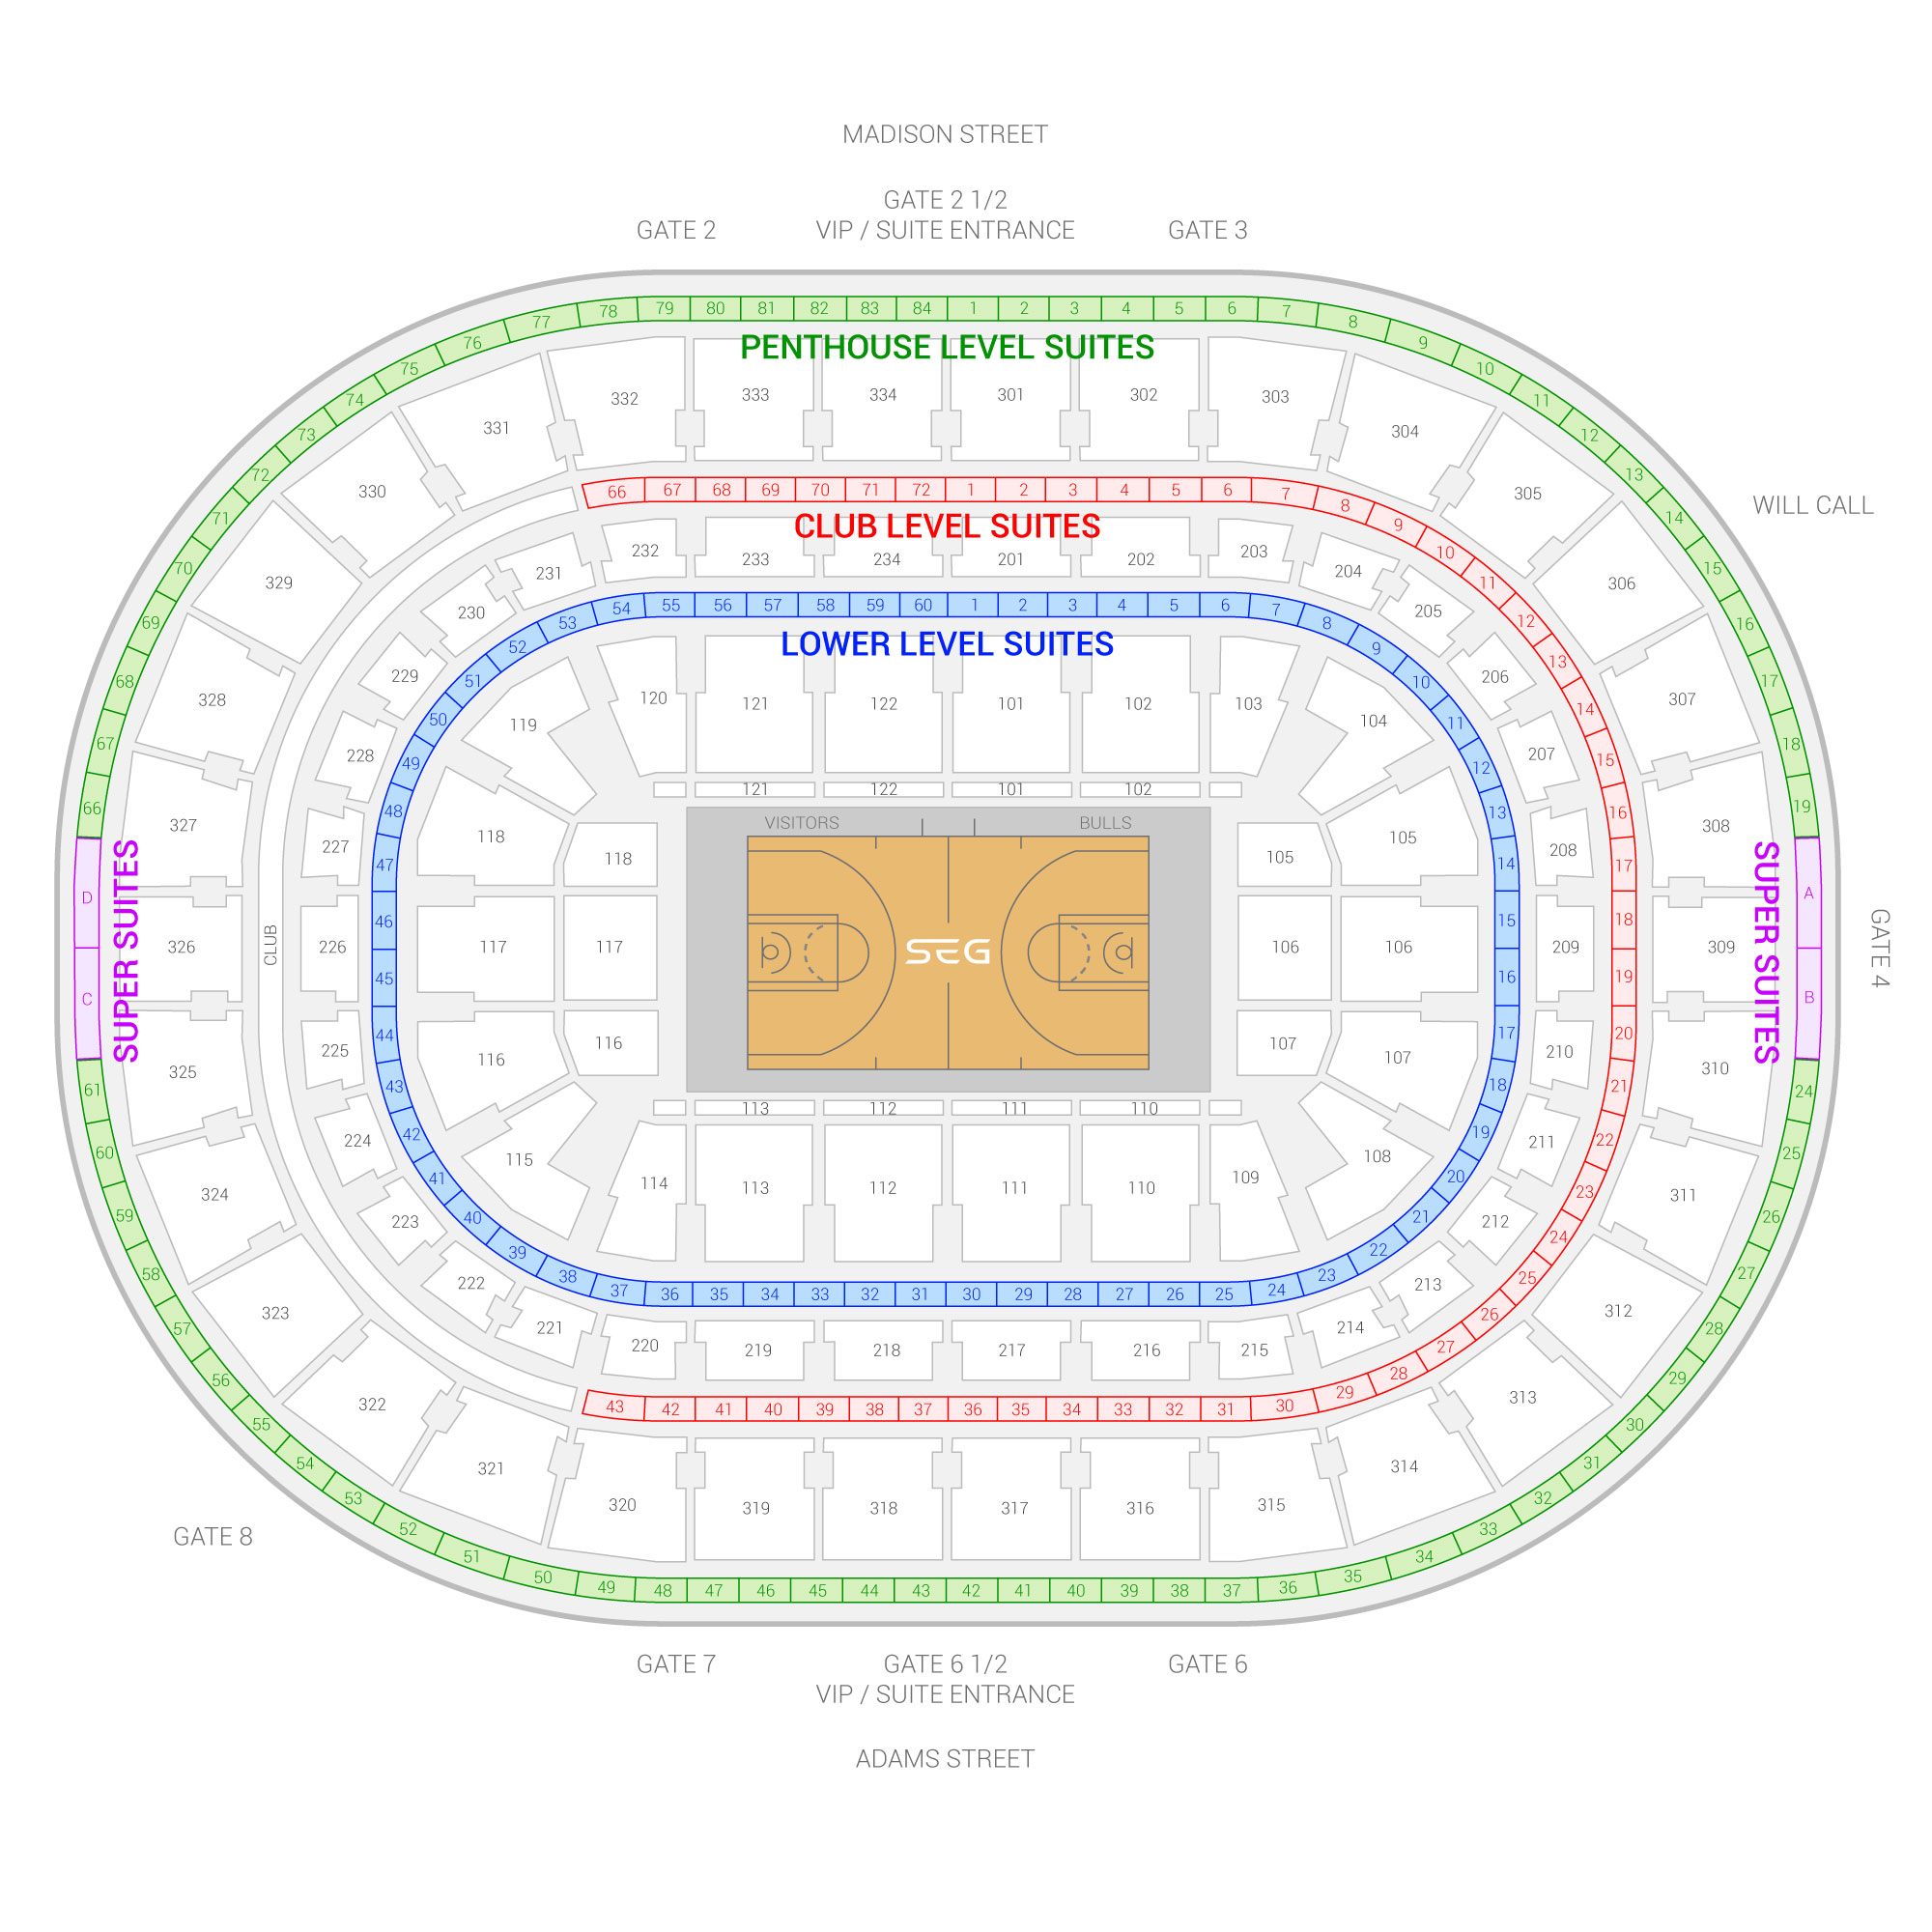 United Center / Chicago Bulls Suite Map and Seating Chart